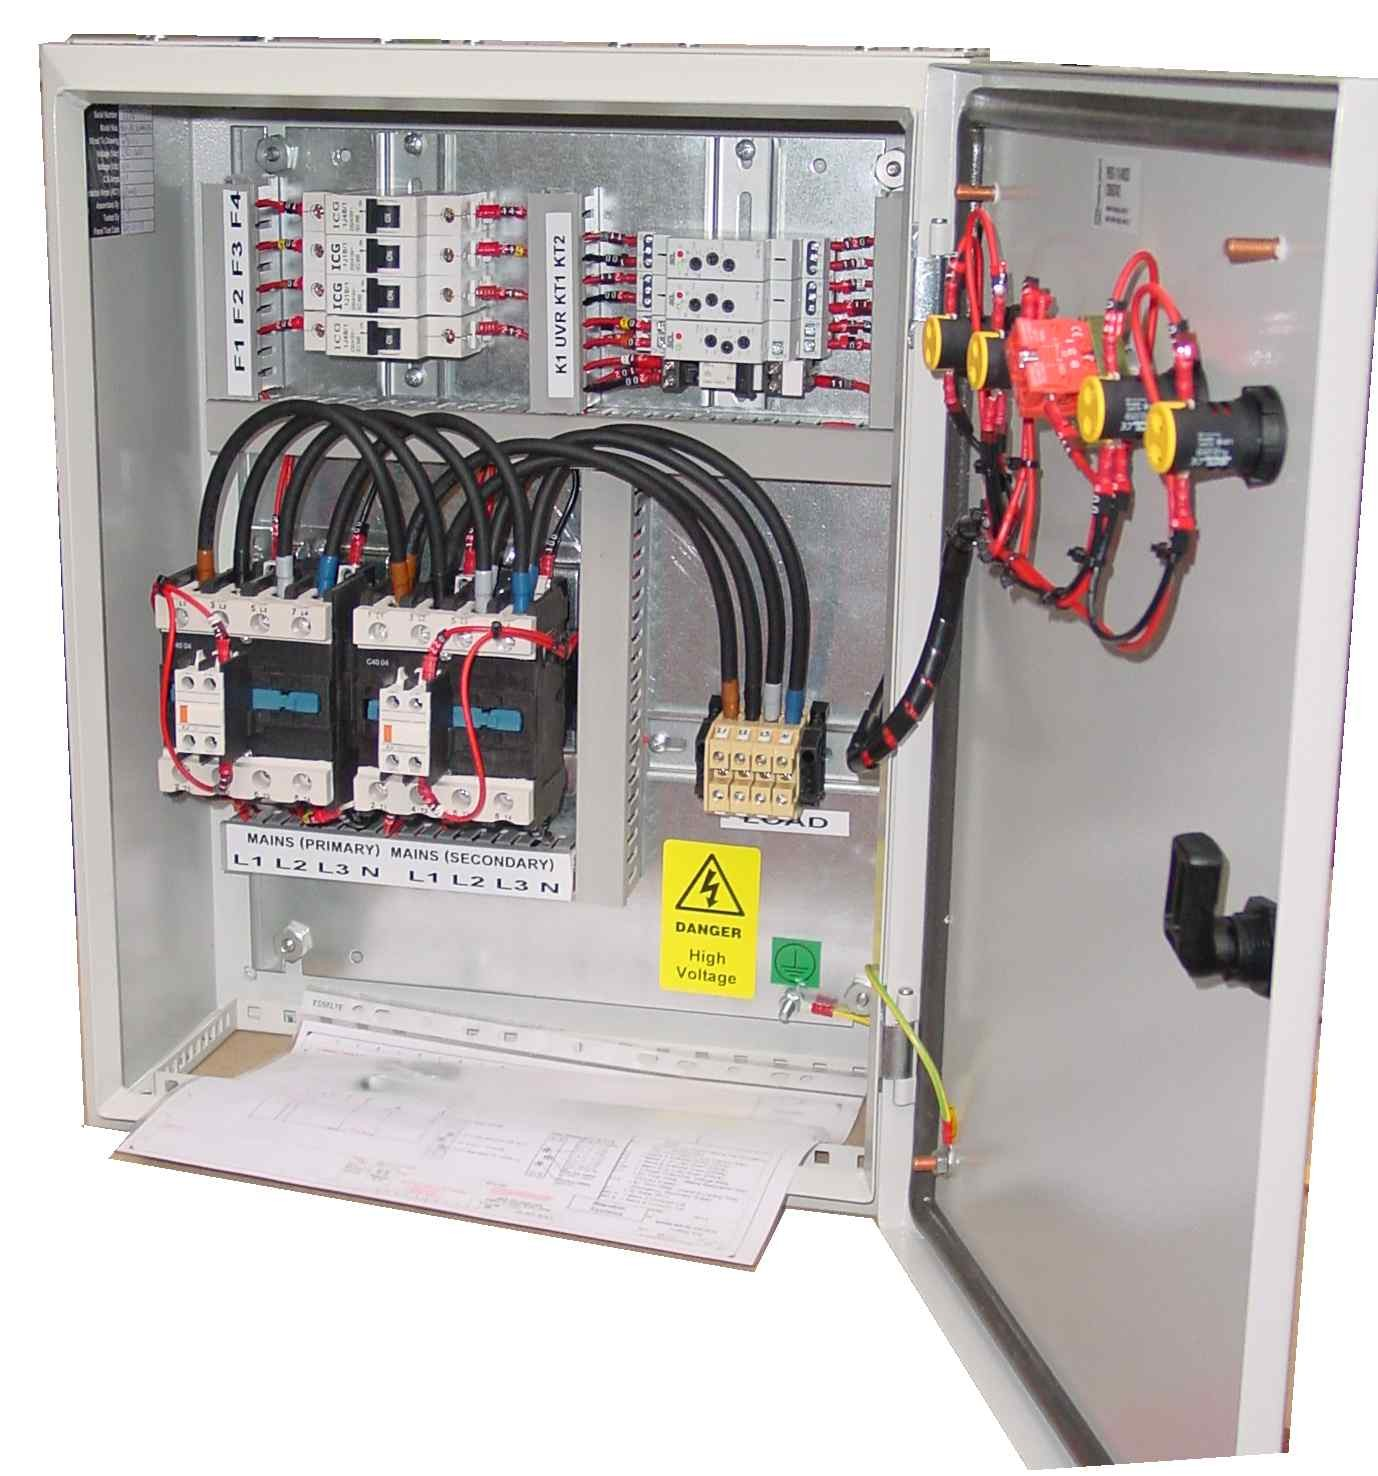 3 Singlephase Transformers further Soft Starter Industrial Applications together with Crane Motor Wiring Diagram as well Wiring Diagram For 120v Coil Contactor in addition Integrated Power Automation Systems Future Trends For Pipeline System Efficiency. on abb motor wiring diagram